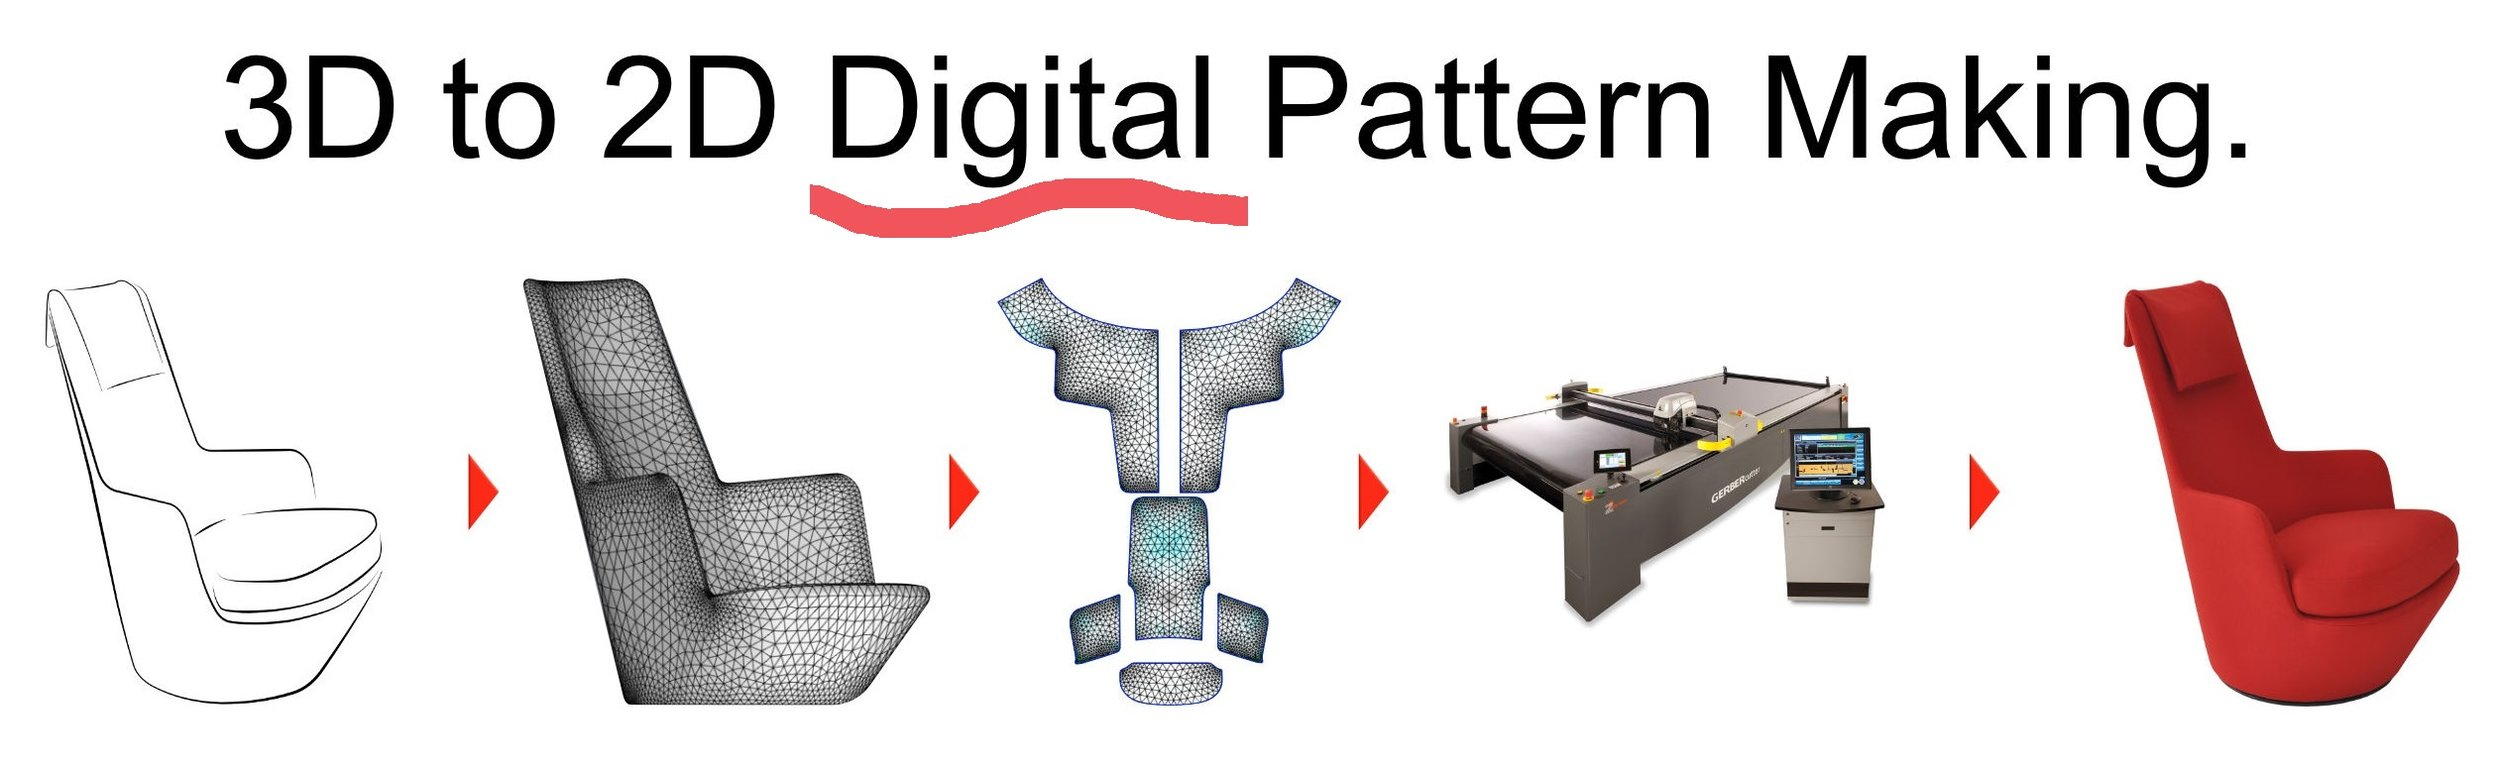 With Digital Patterning, the 2D patterns and production drawings are generated directly from the 3D design files and then shared seamlessly with the automated production equipment (i.e. textile printer, cutters and sewing/bonding machines). The time savings are dramatic.